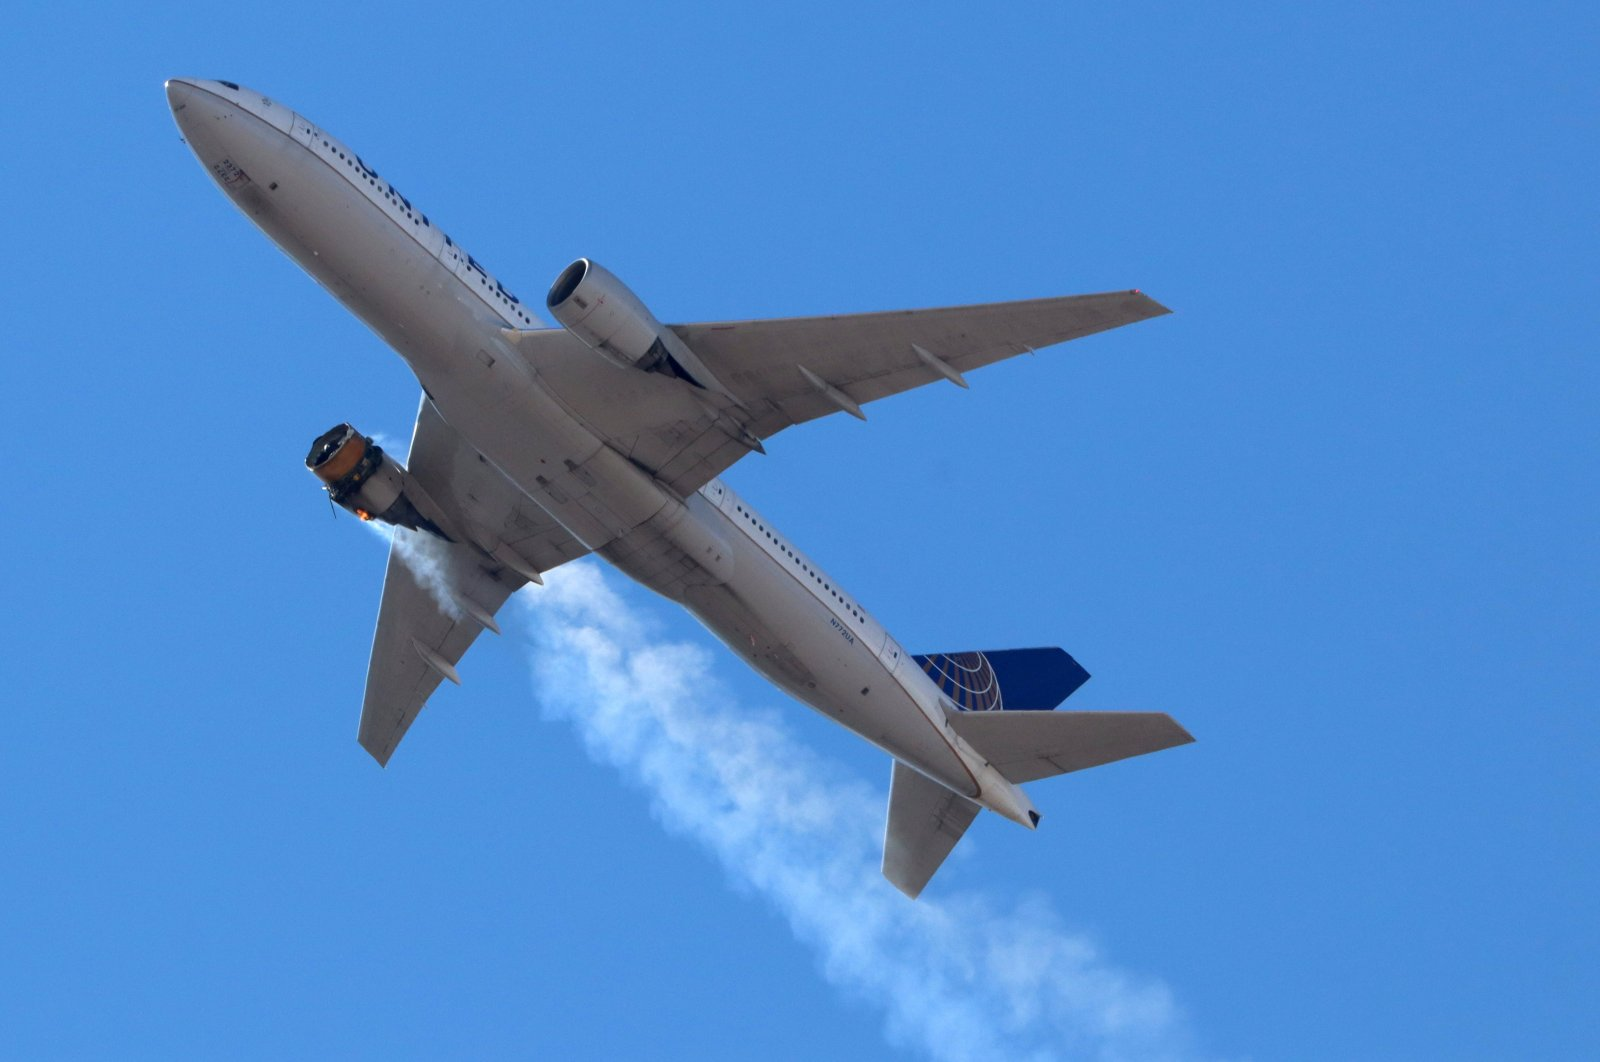 United Airlines flight UA328, carrying 231 passengers and 10 crew on board, returns to Denver International Airport with its starboard engine on fire after it sent a Mayday alert, over Denver, Colorado, U.S., Feb. 20, 2021. (Reuters Photo)